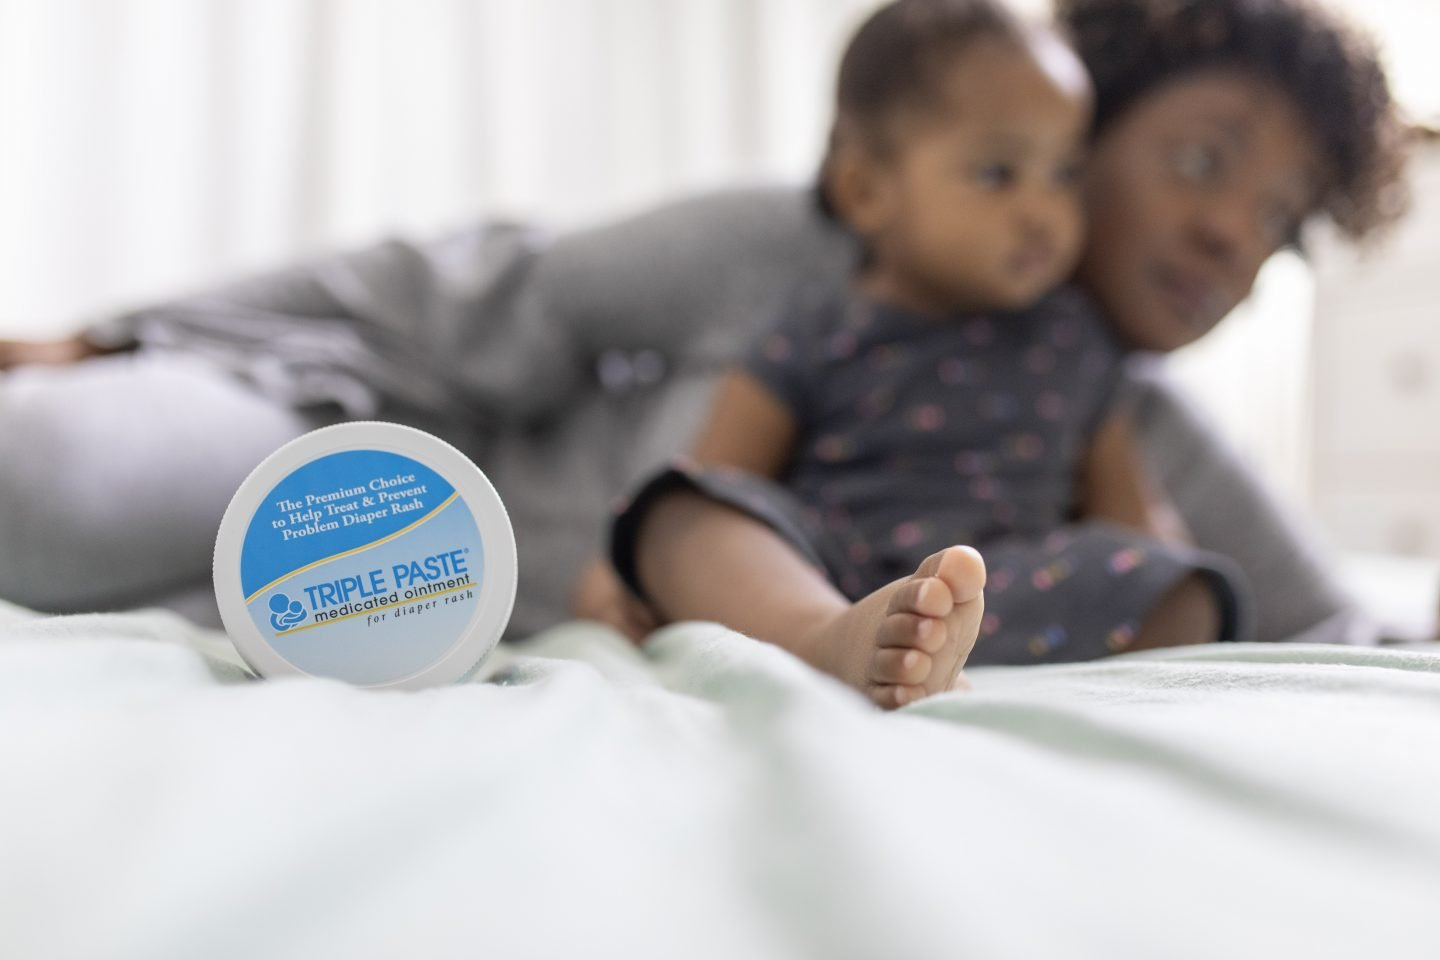 What Every New Mom Should Know About Introducing Solids and Diaper Rashes